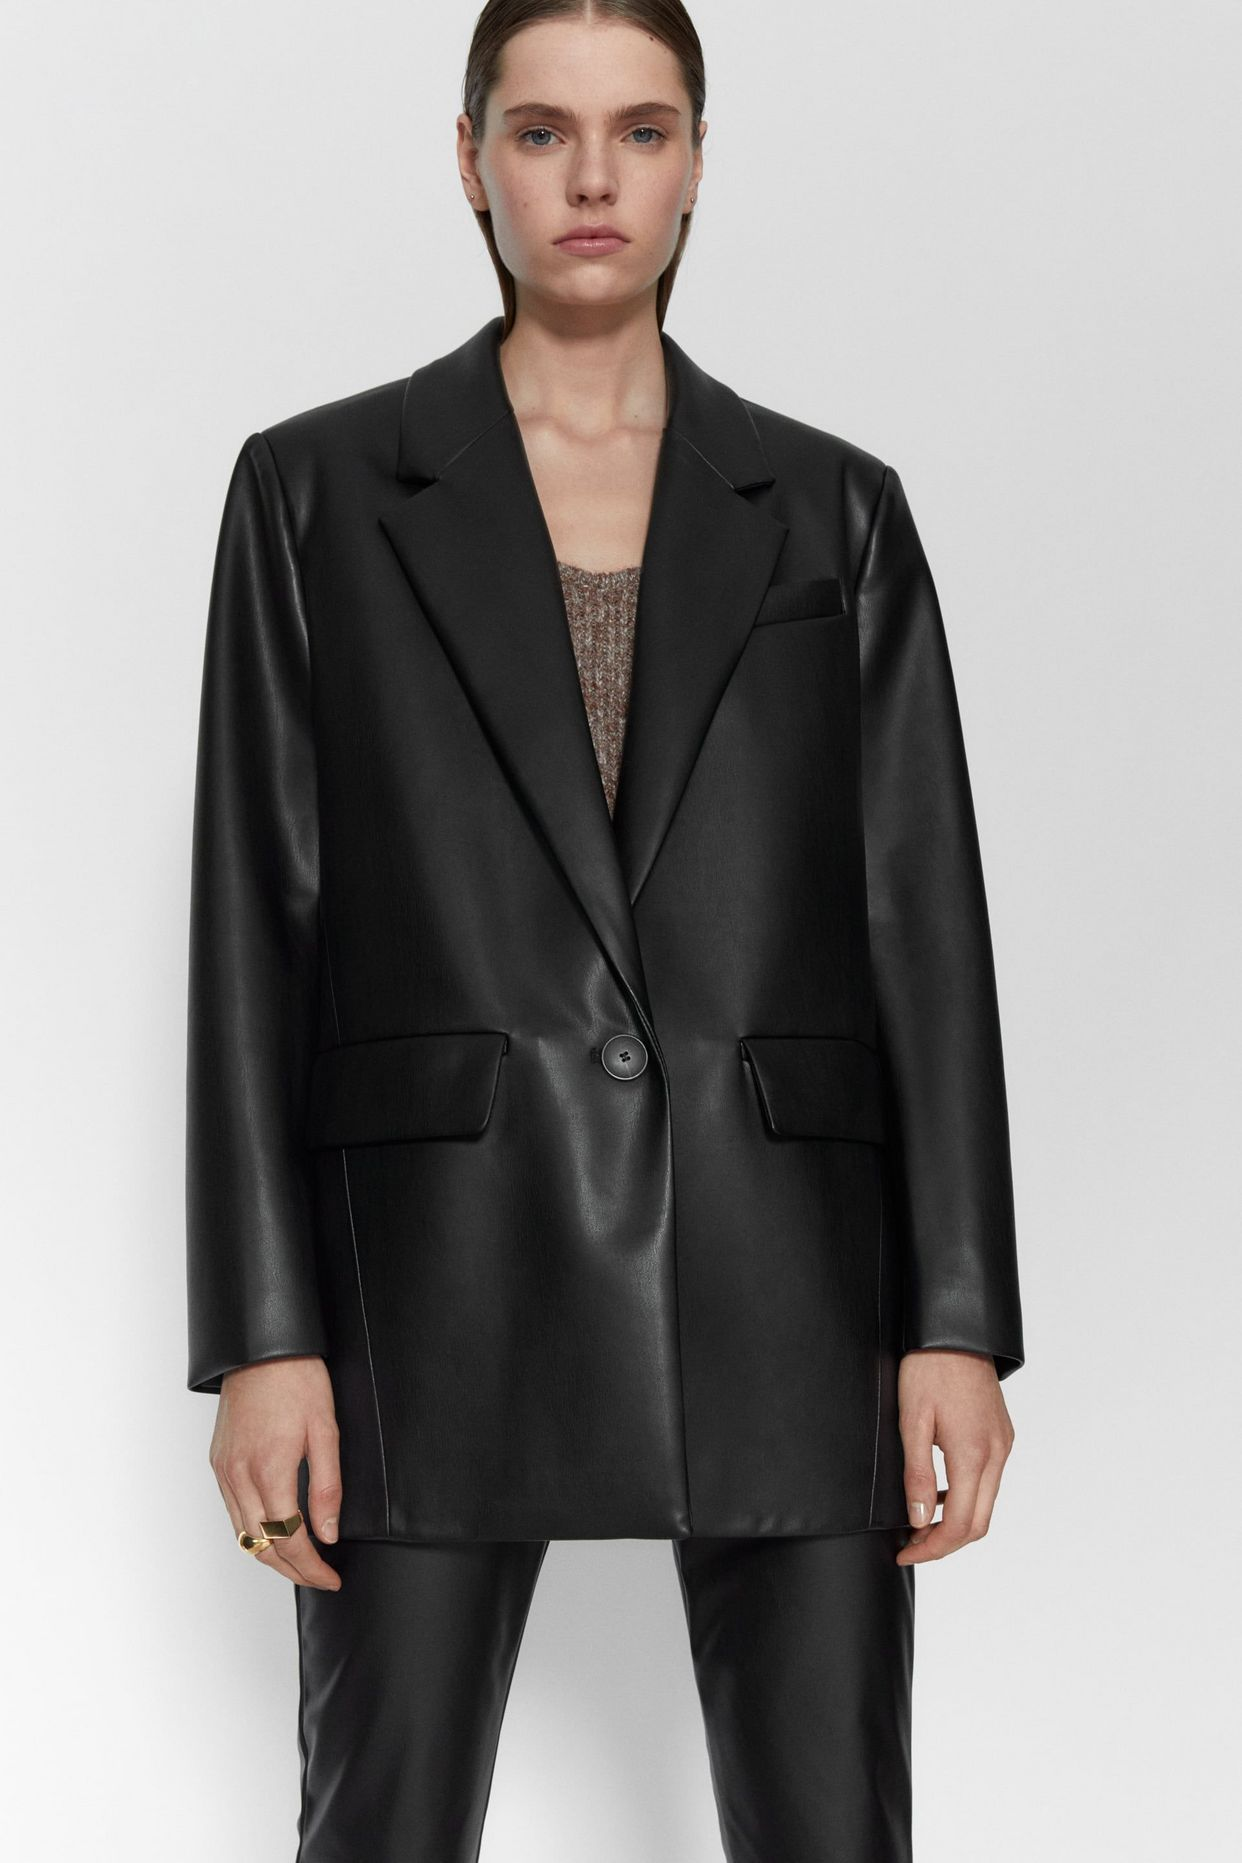 I M A Picky Zara Shopper And This Is What I M Buying There For Winter Whowhatwear Com Oversized Blazer Blazer Leather Blazer [ 1863 x 1242 Pixel ]